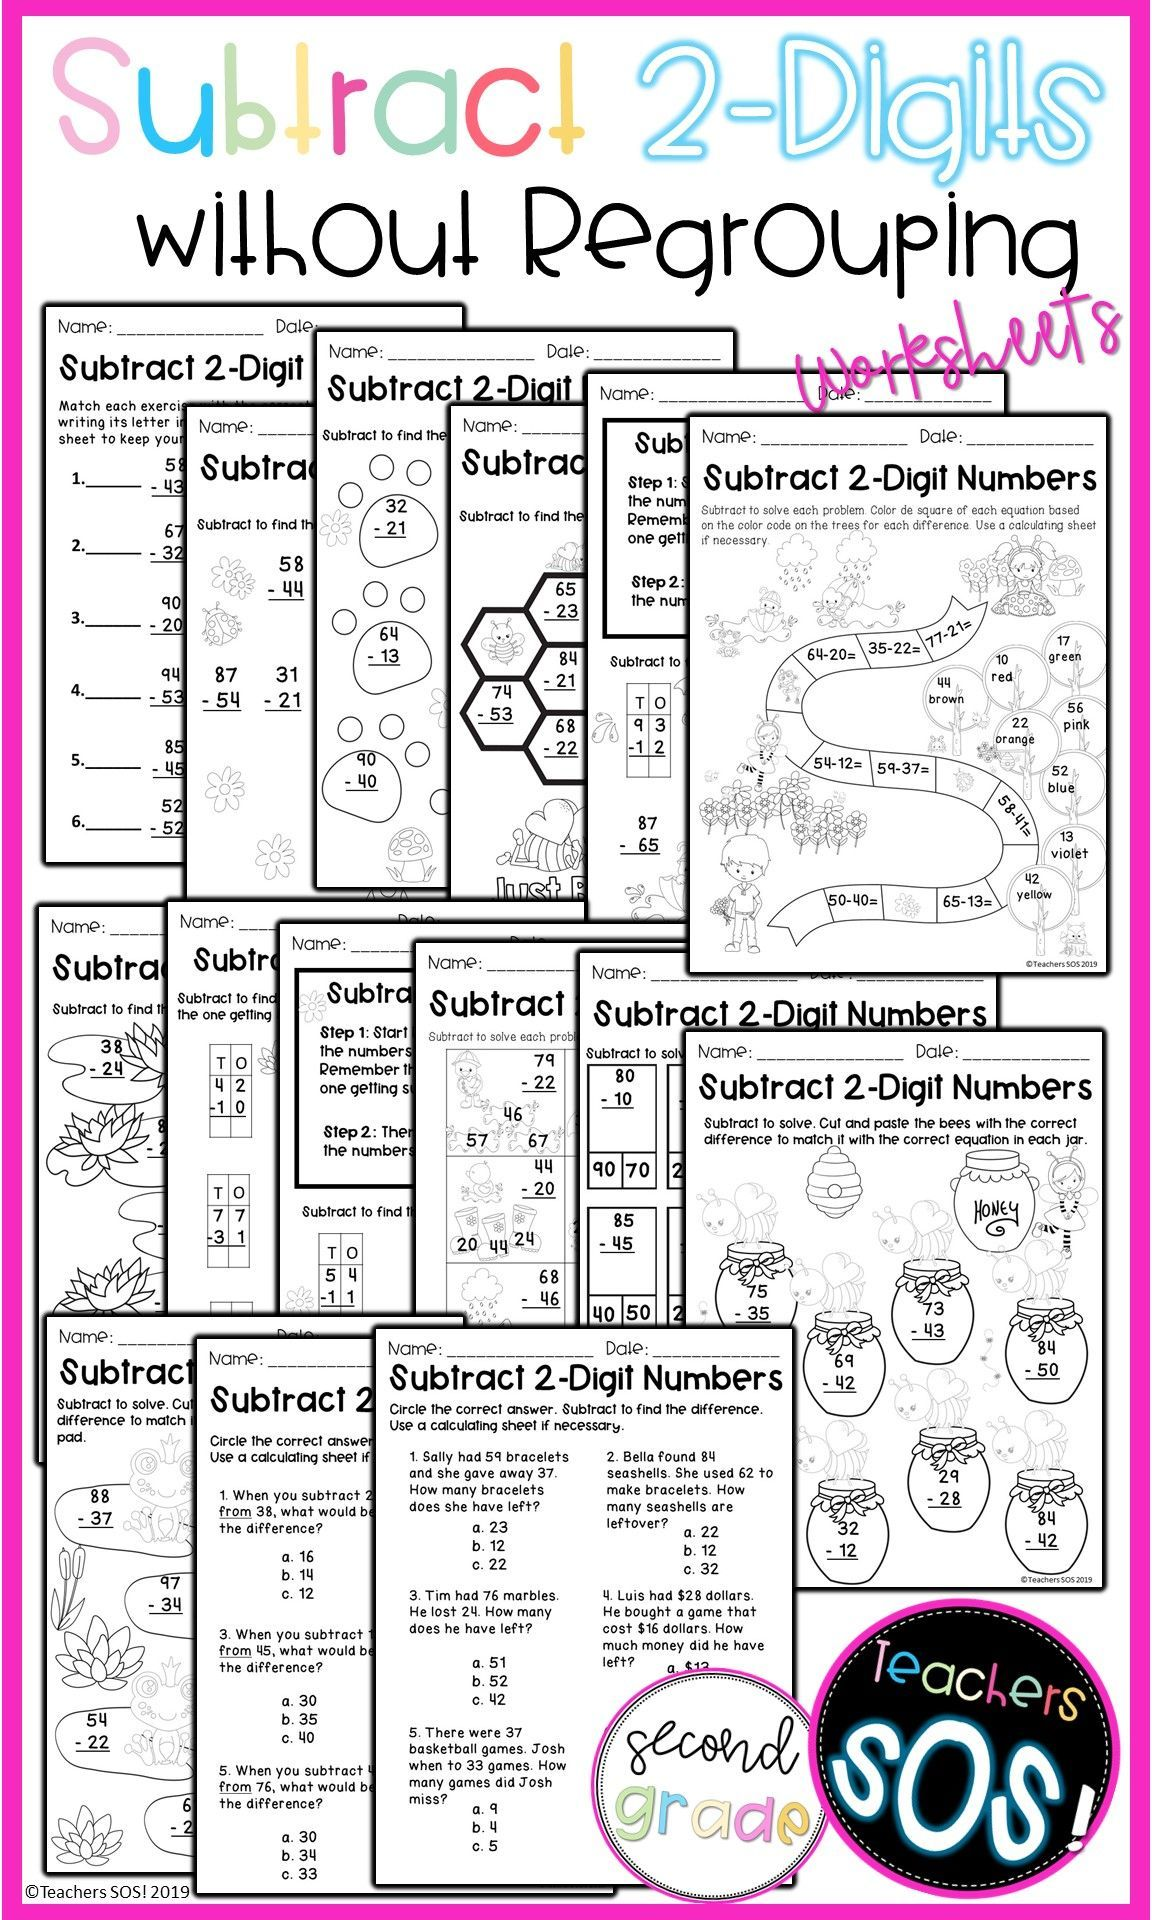 Subtract 2 Digit Numbers No Regrouping Worksheets In